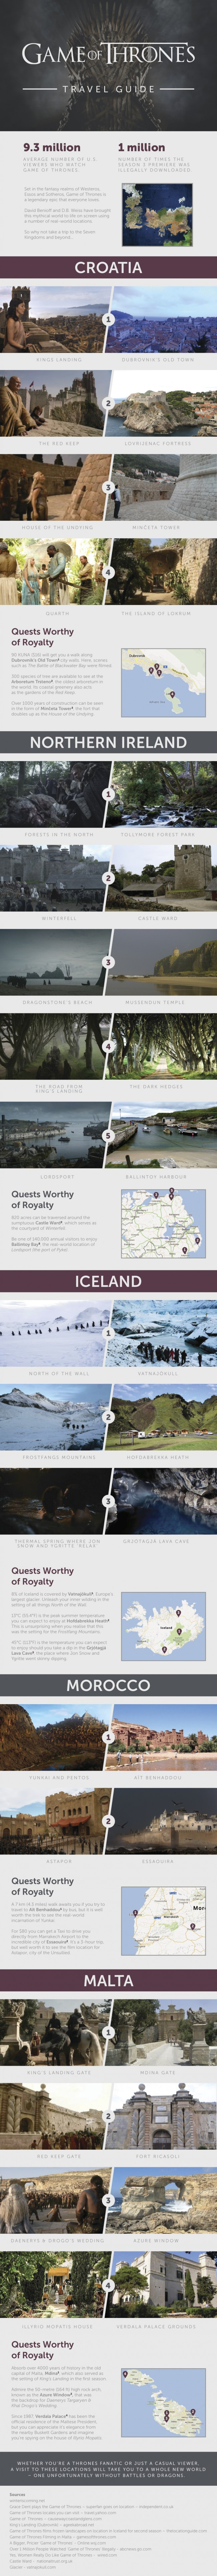 game-of-thrones-travel-guide